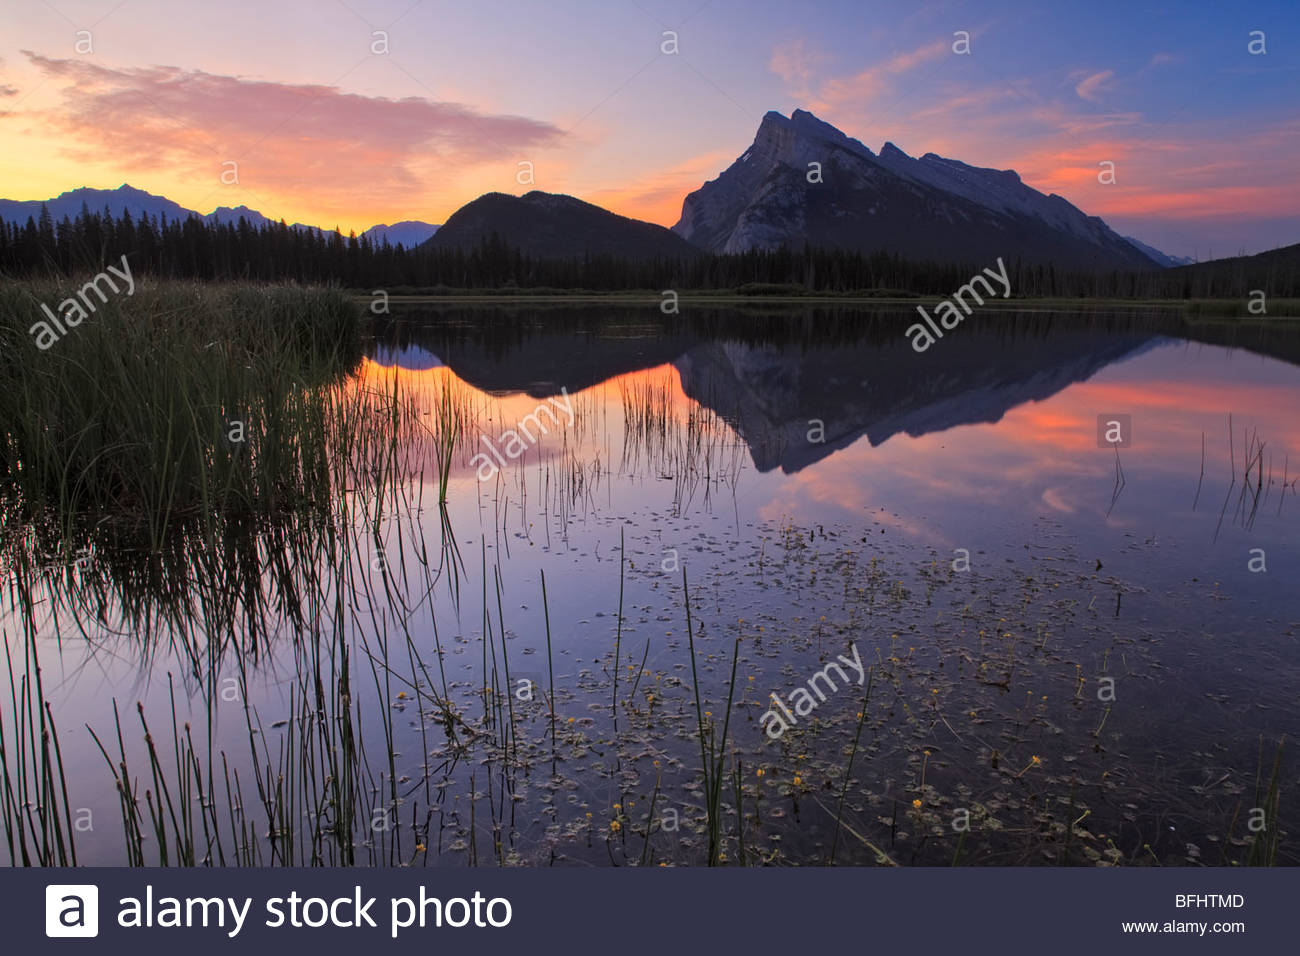 Mount Rundle from First Vermilion Lake, Alberta, Canada - Stock Image